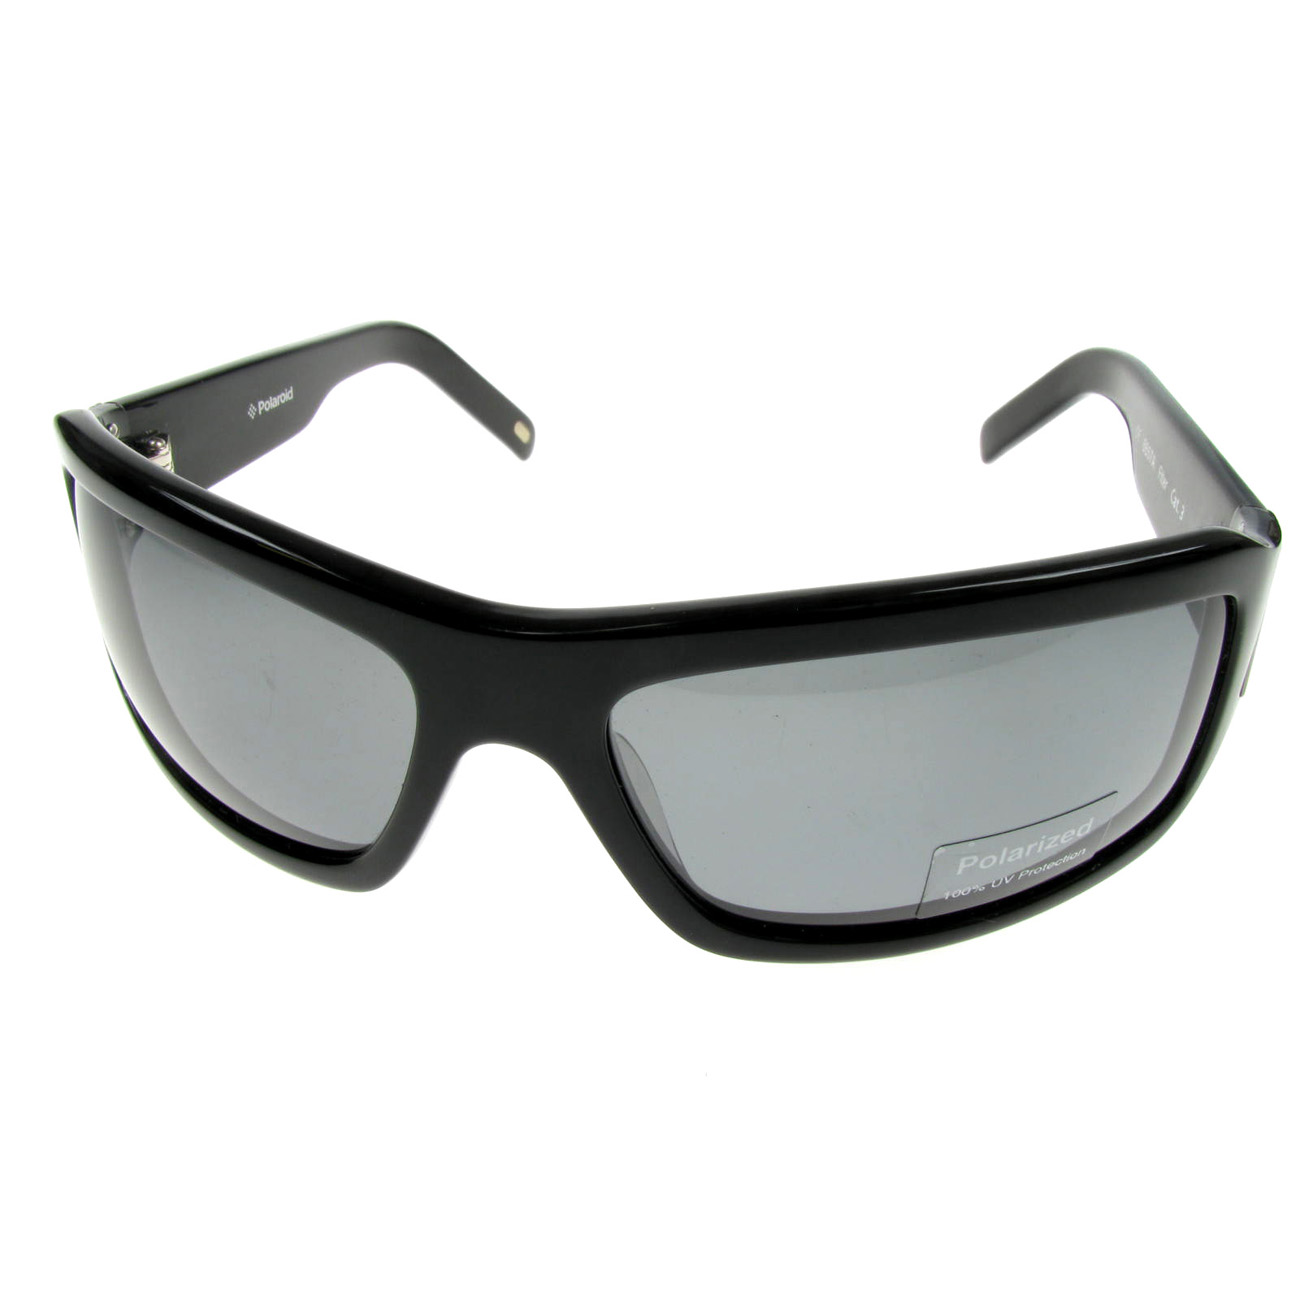 Polaroid Polarized Sunglasses  original polaroid polarized lens sunglasses 6657a cat 3 ebay